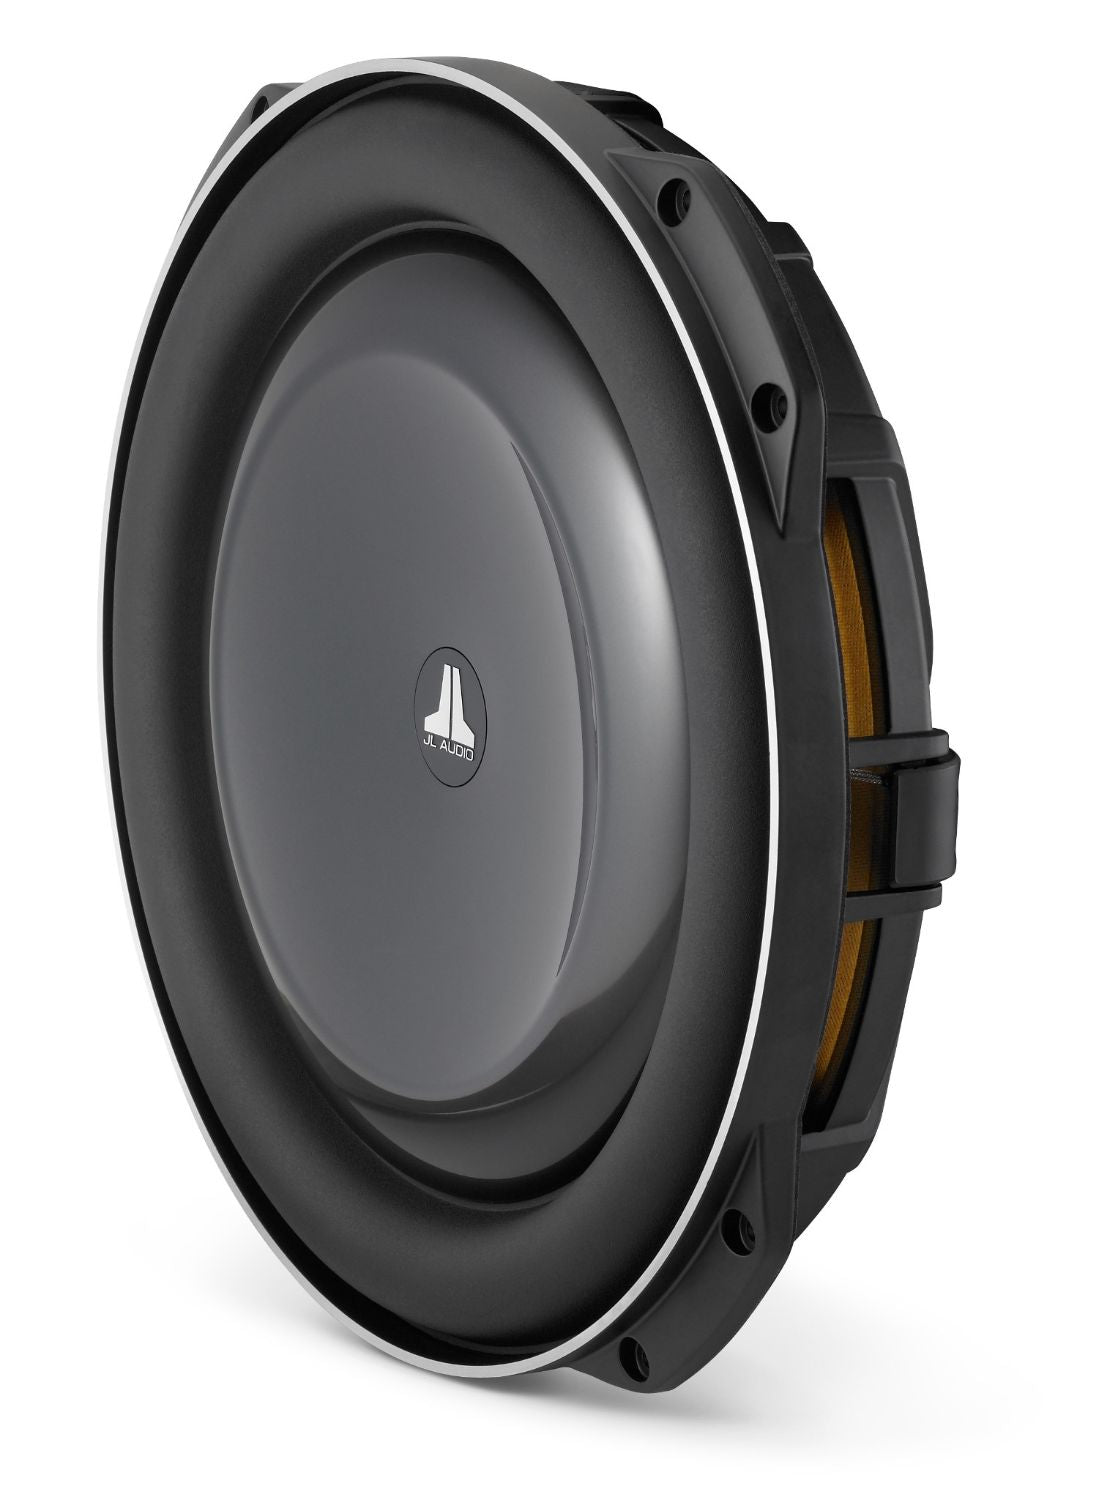 Front of 13TW5v2 Subwoofer Facing Left